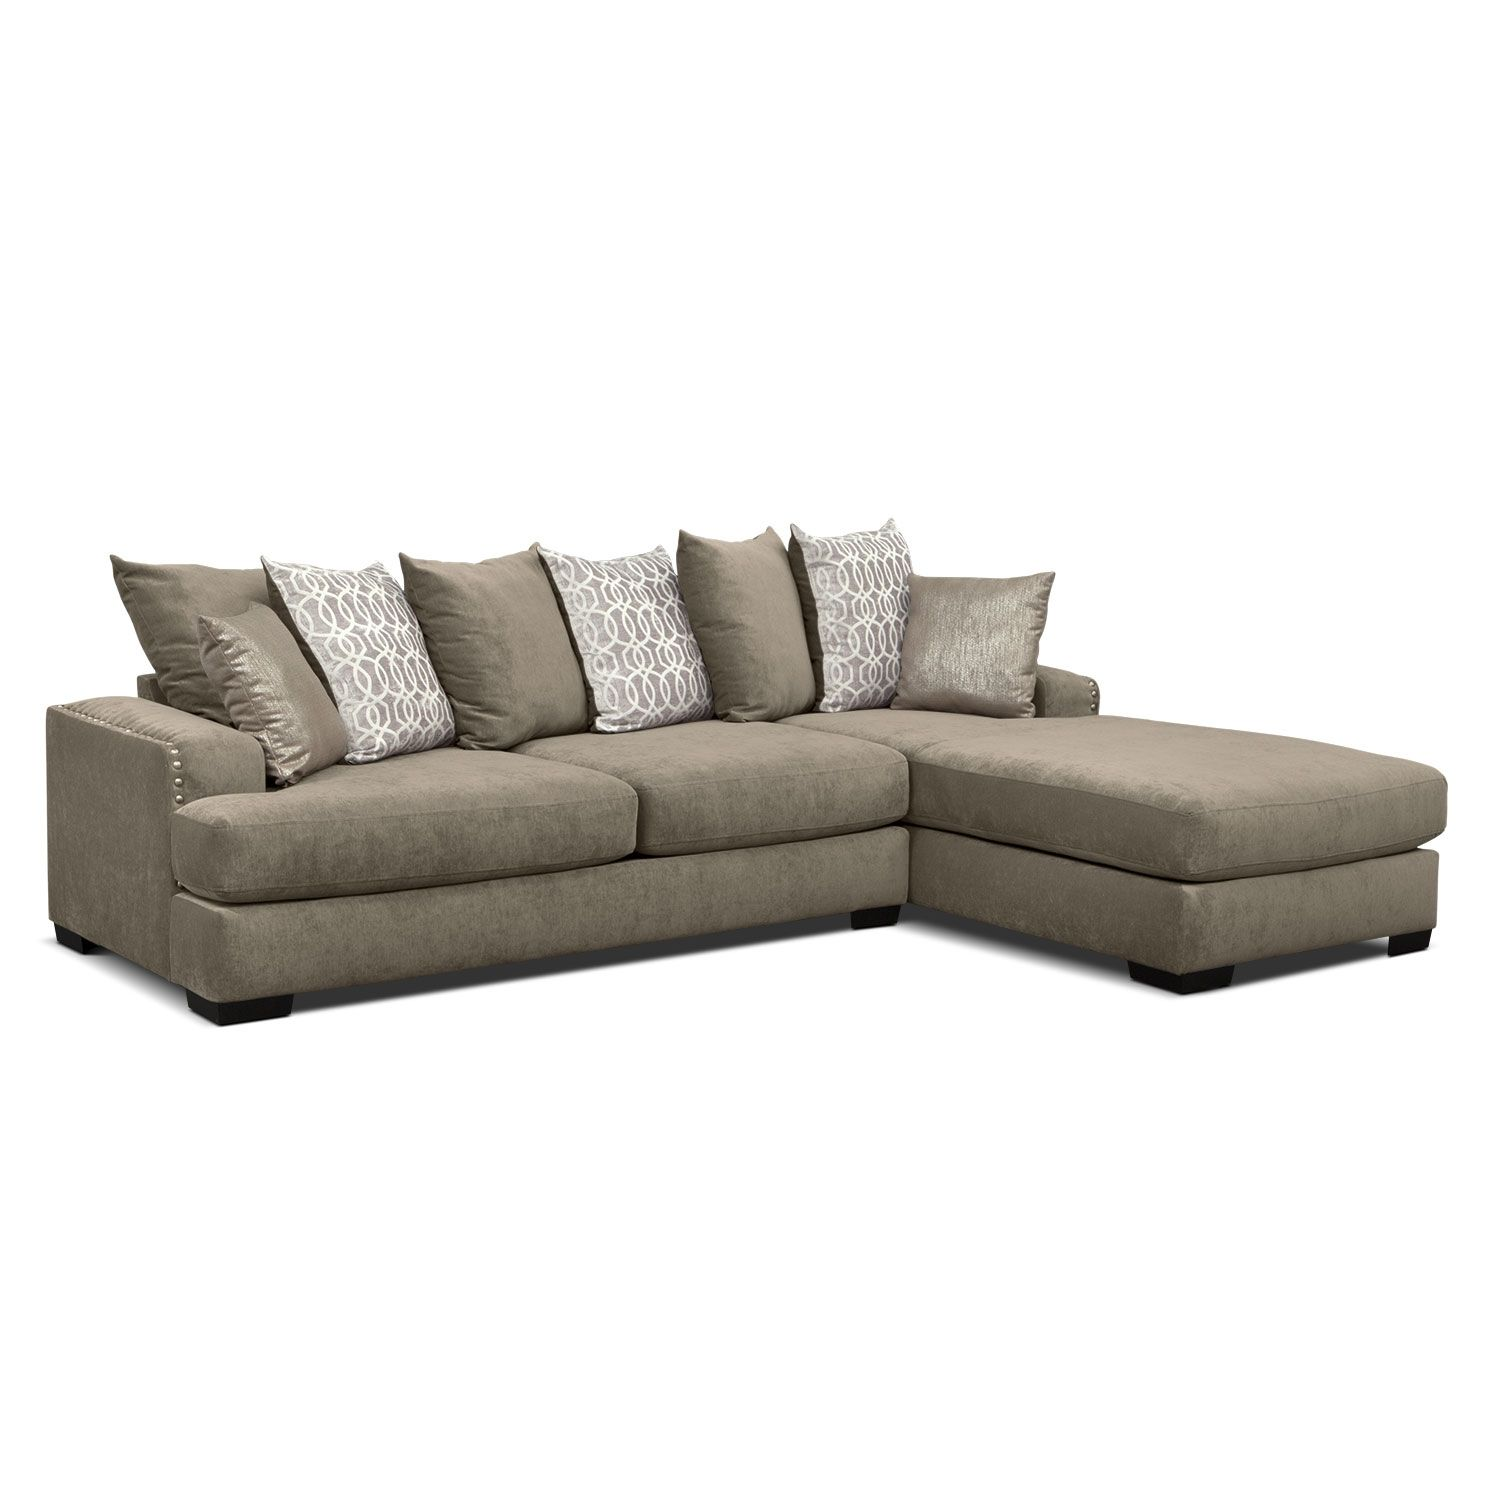 Right on Beat. The platinum-finished Tempo sectional living room ...